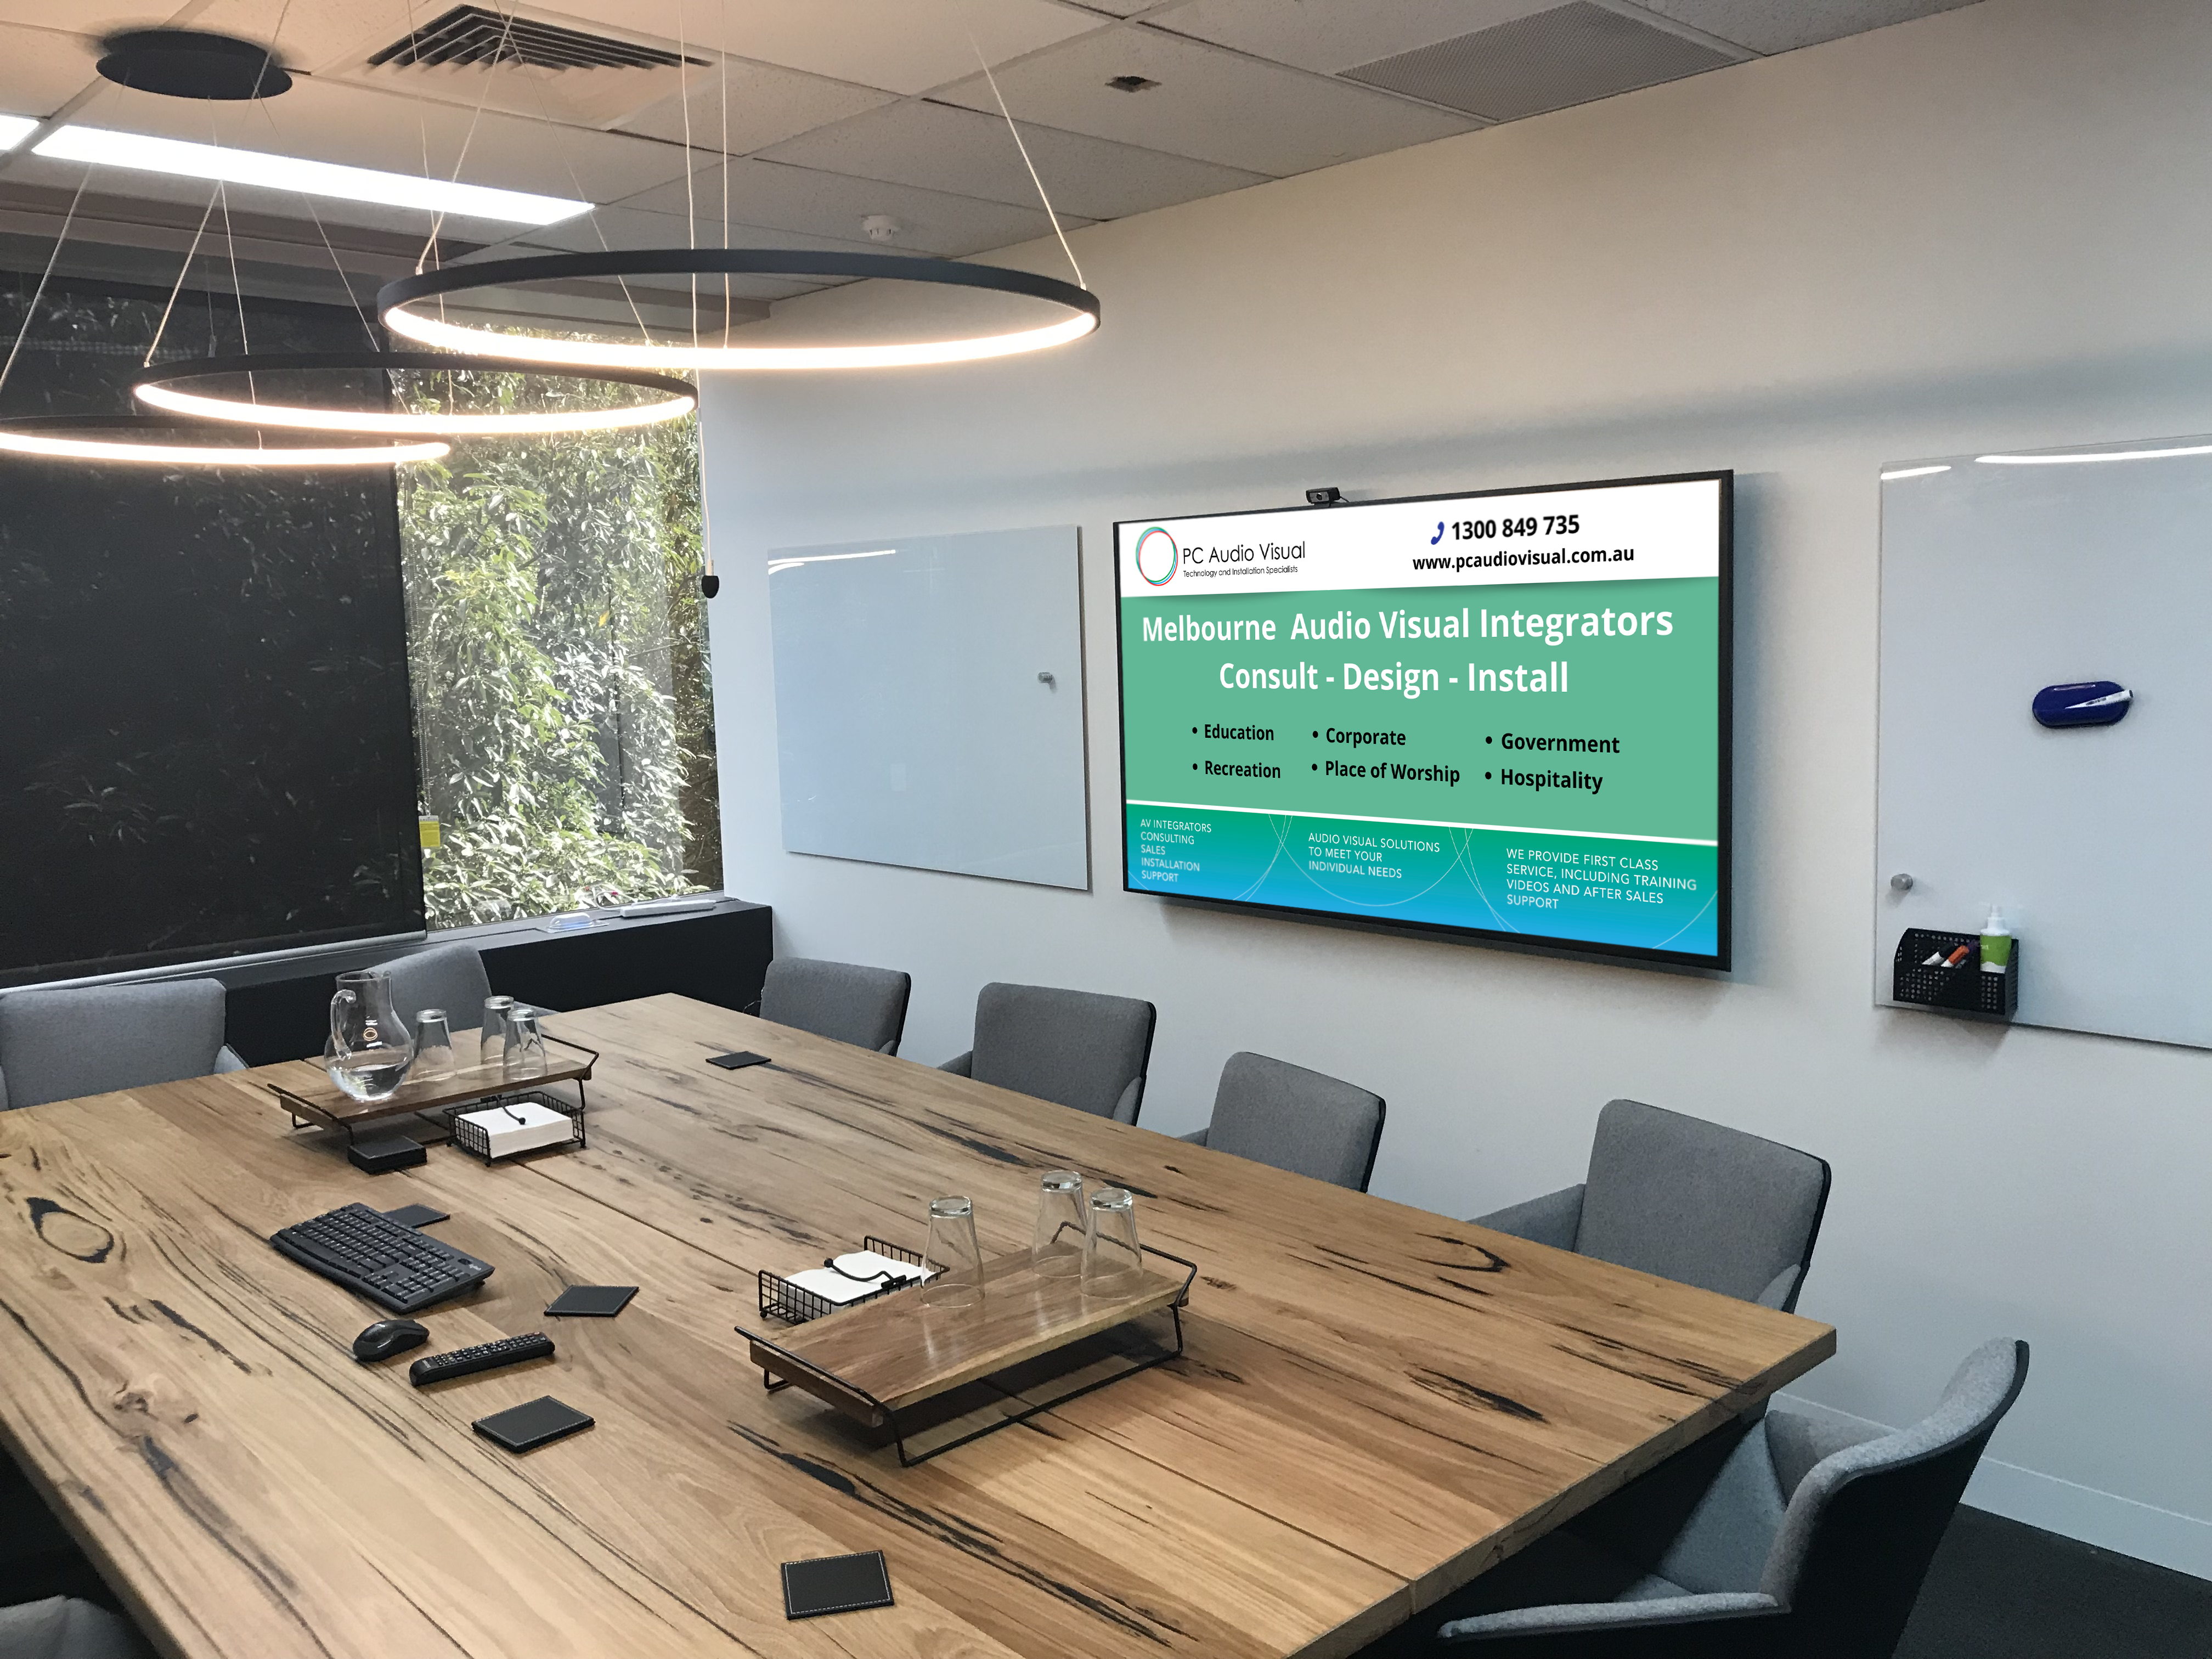 Video Conferencing Installation | Corporate Elwood PC Audio Visual Melbourne